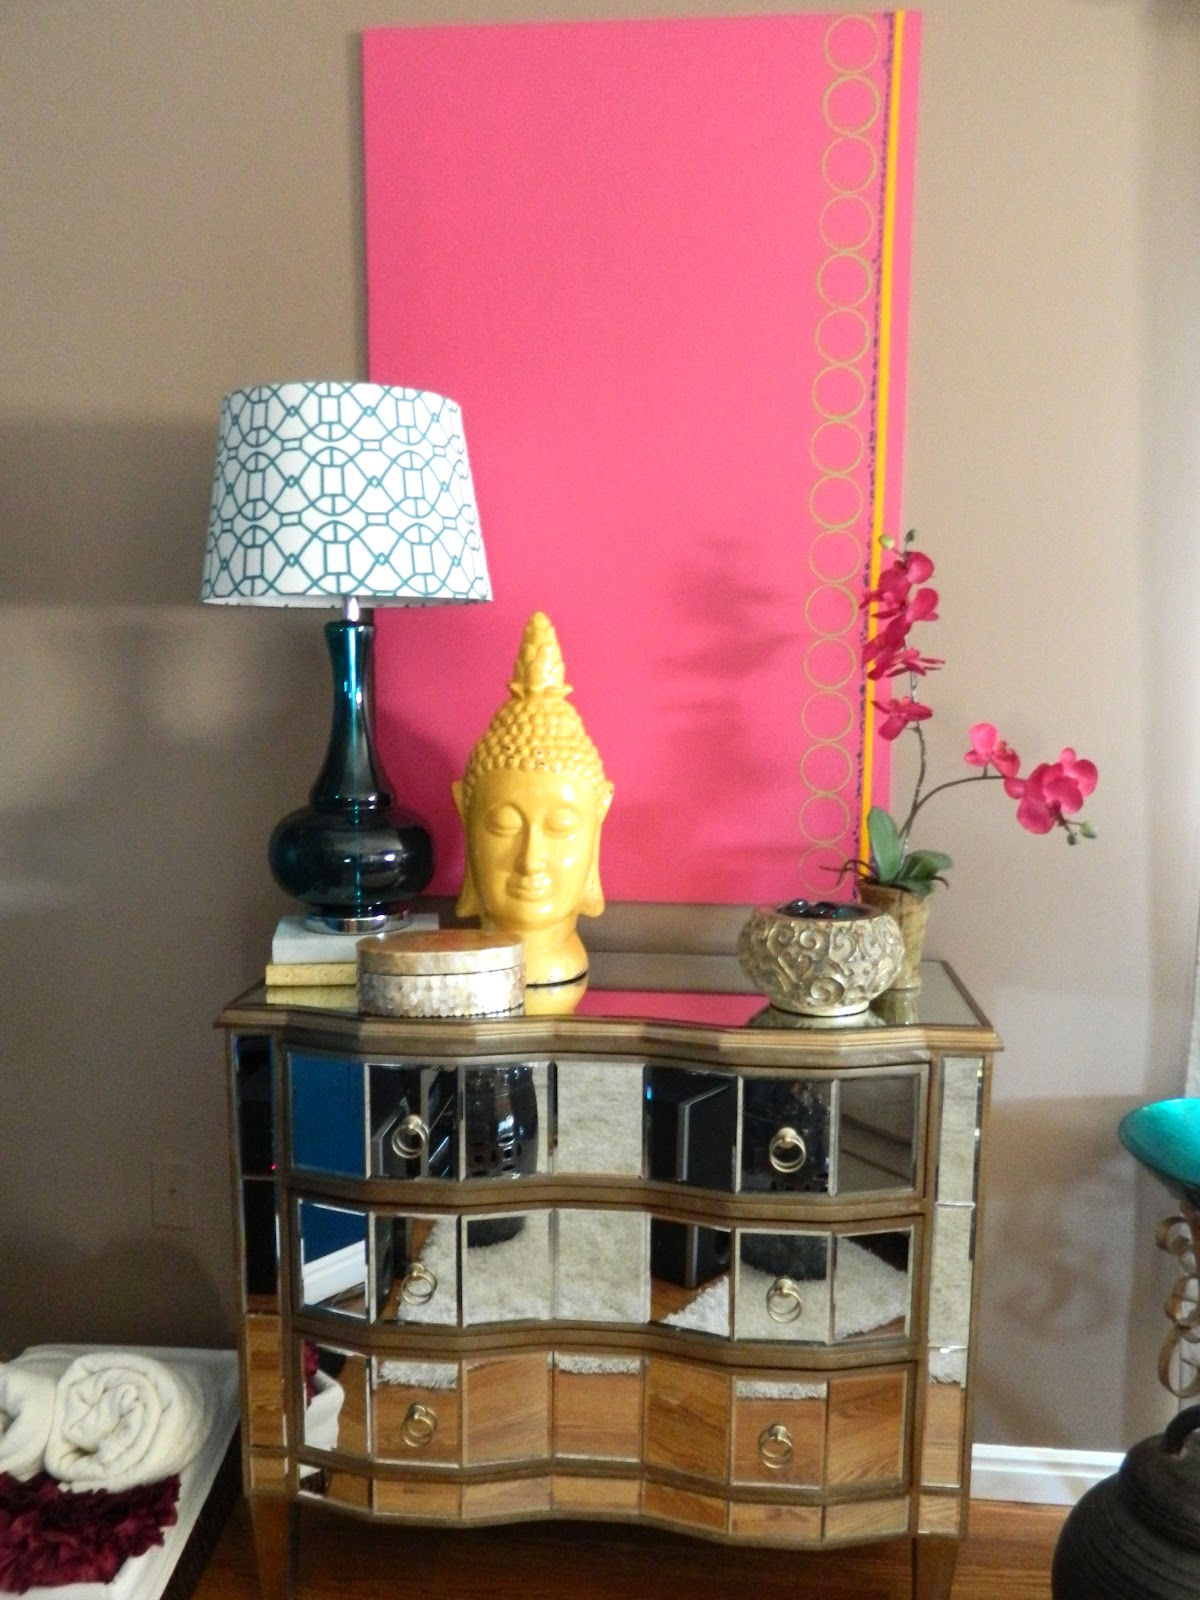 Living Room Ideas On A Budget With Design Ideas For Decorating A Small